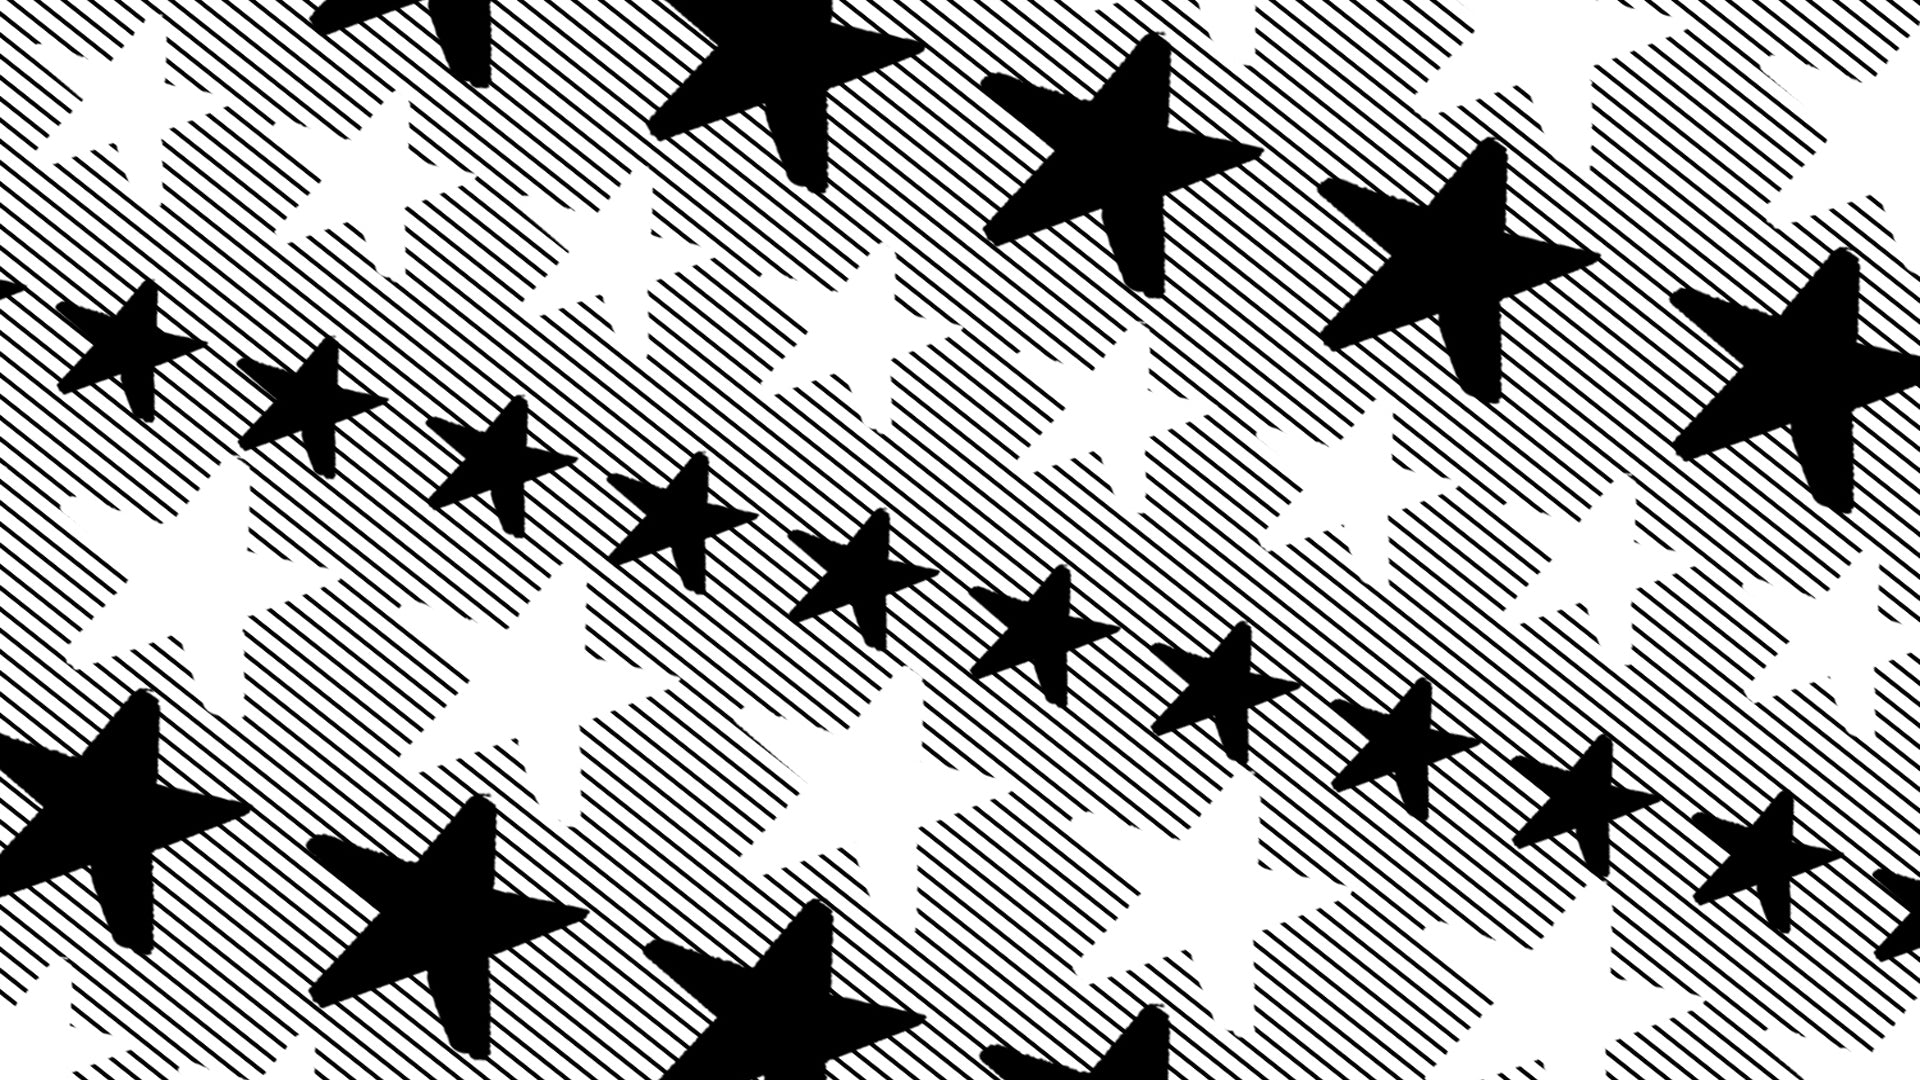 Black and White Stars and Stripes Free Desktop Download by Alarmclock Design LLC